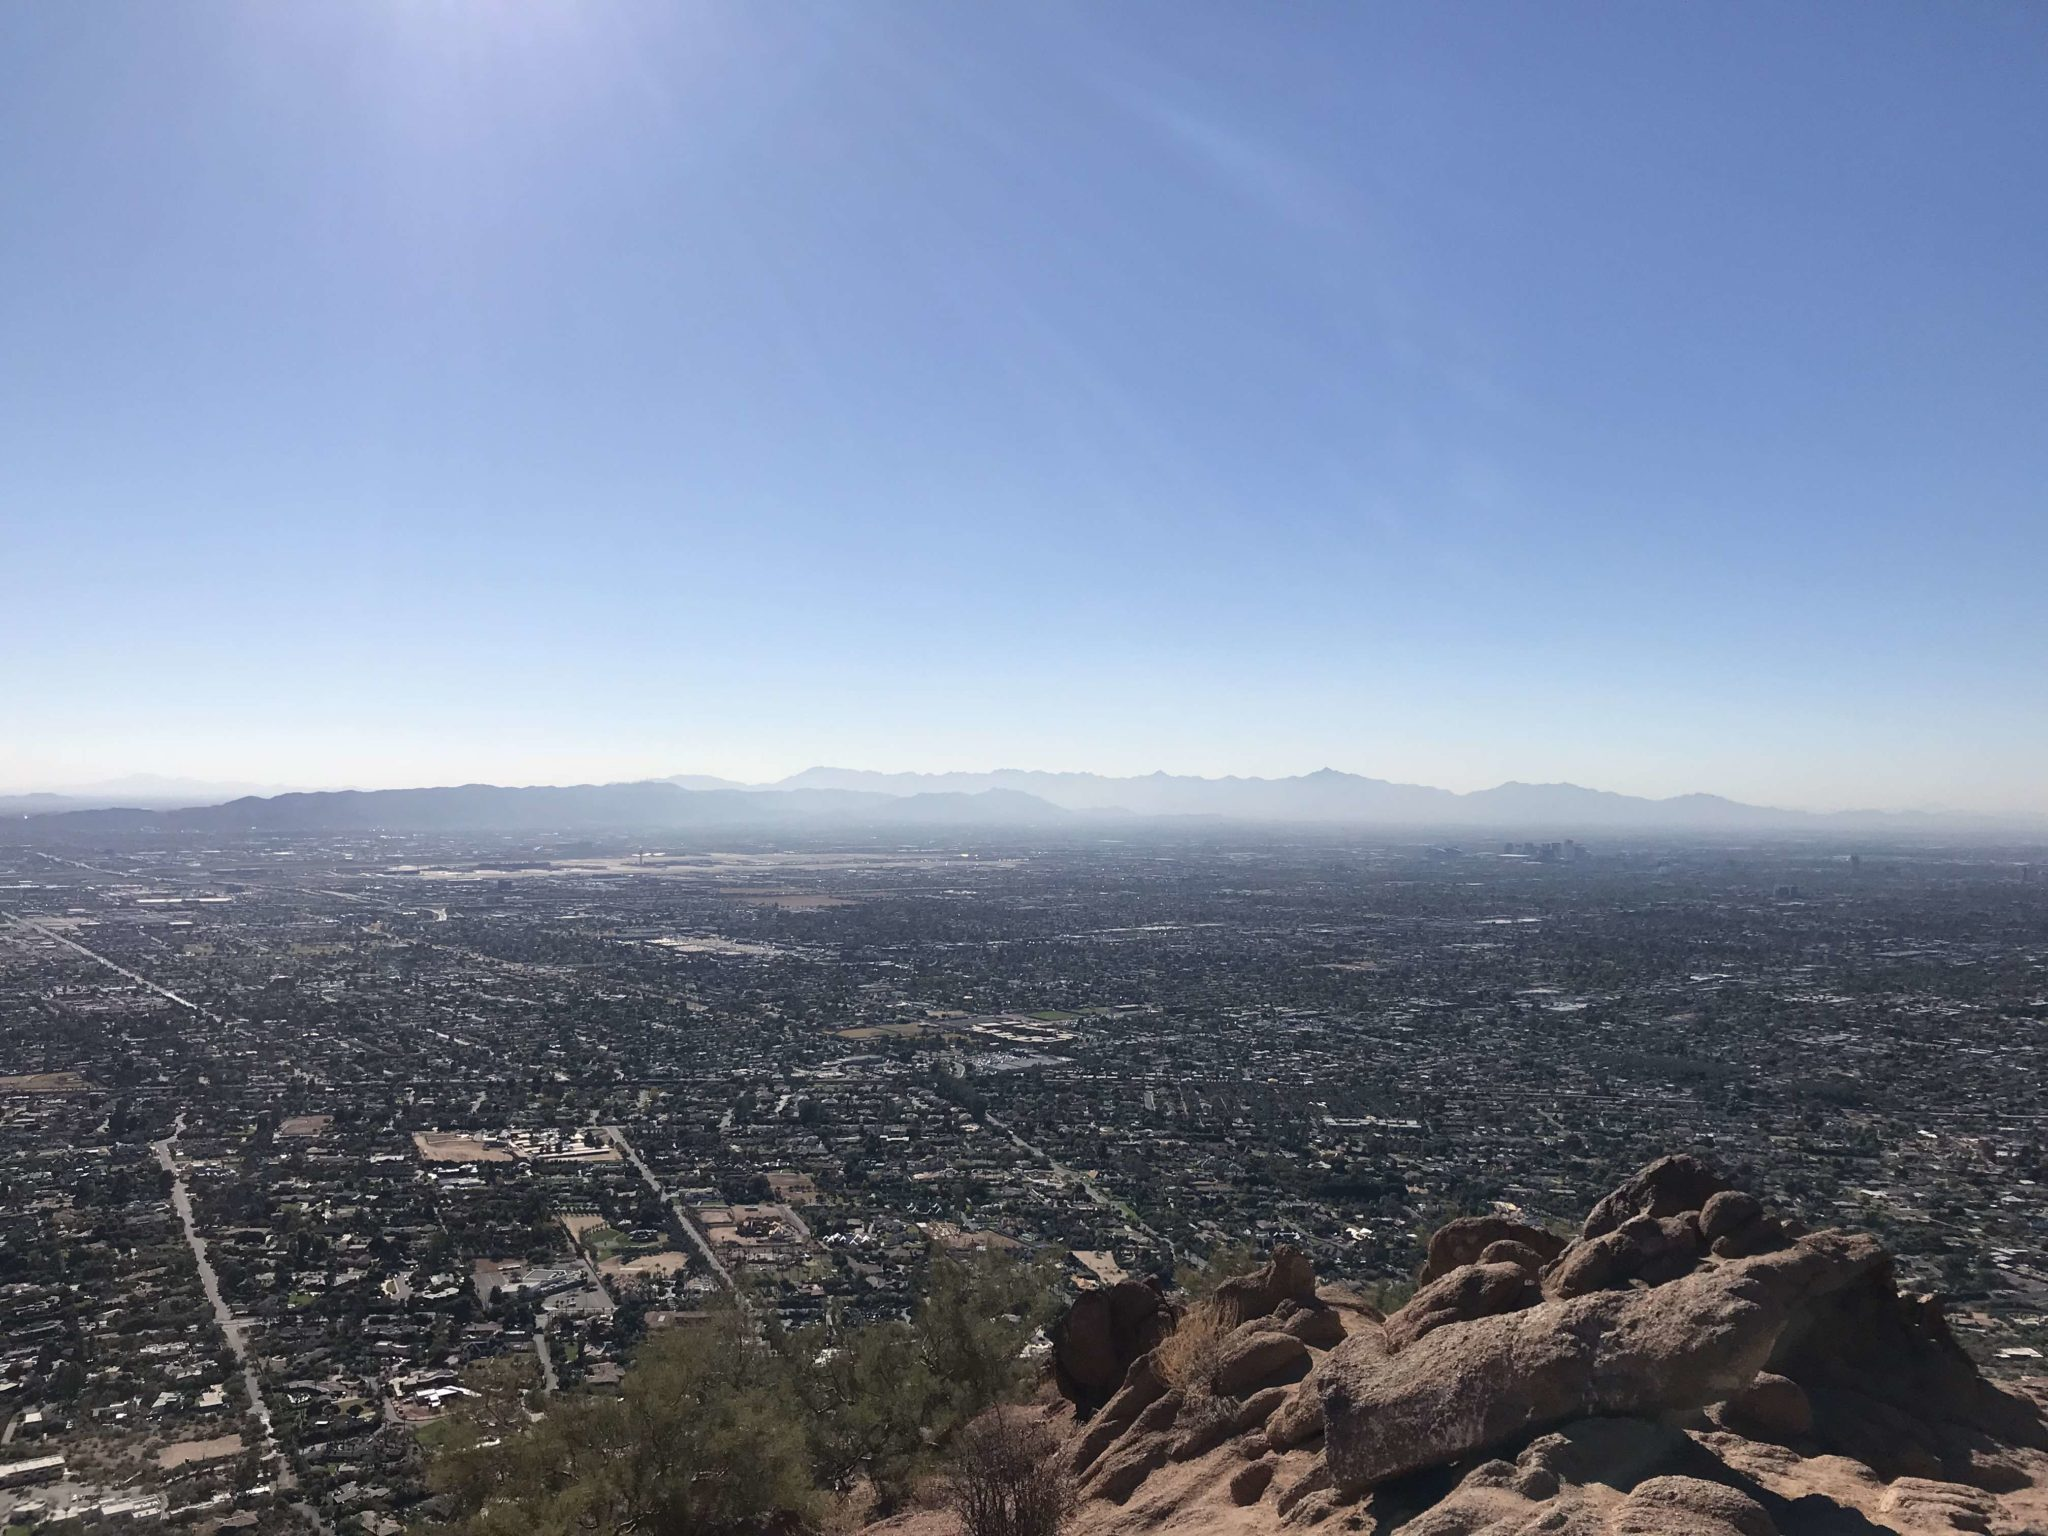 Downtown Phoenix from Camelback